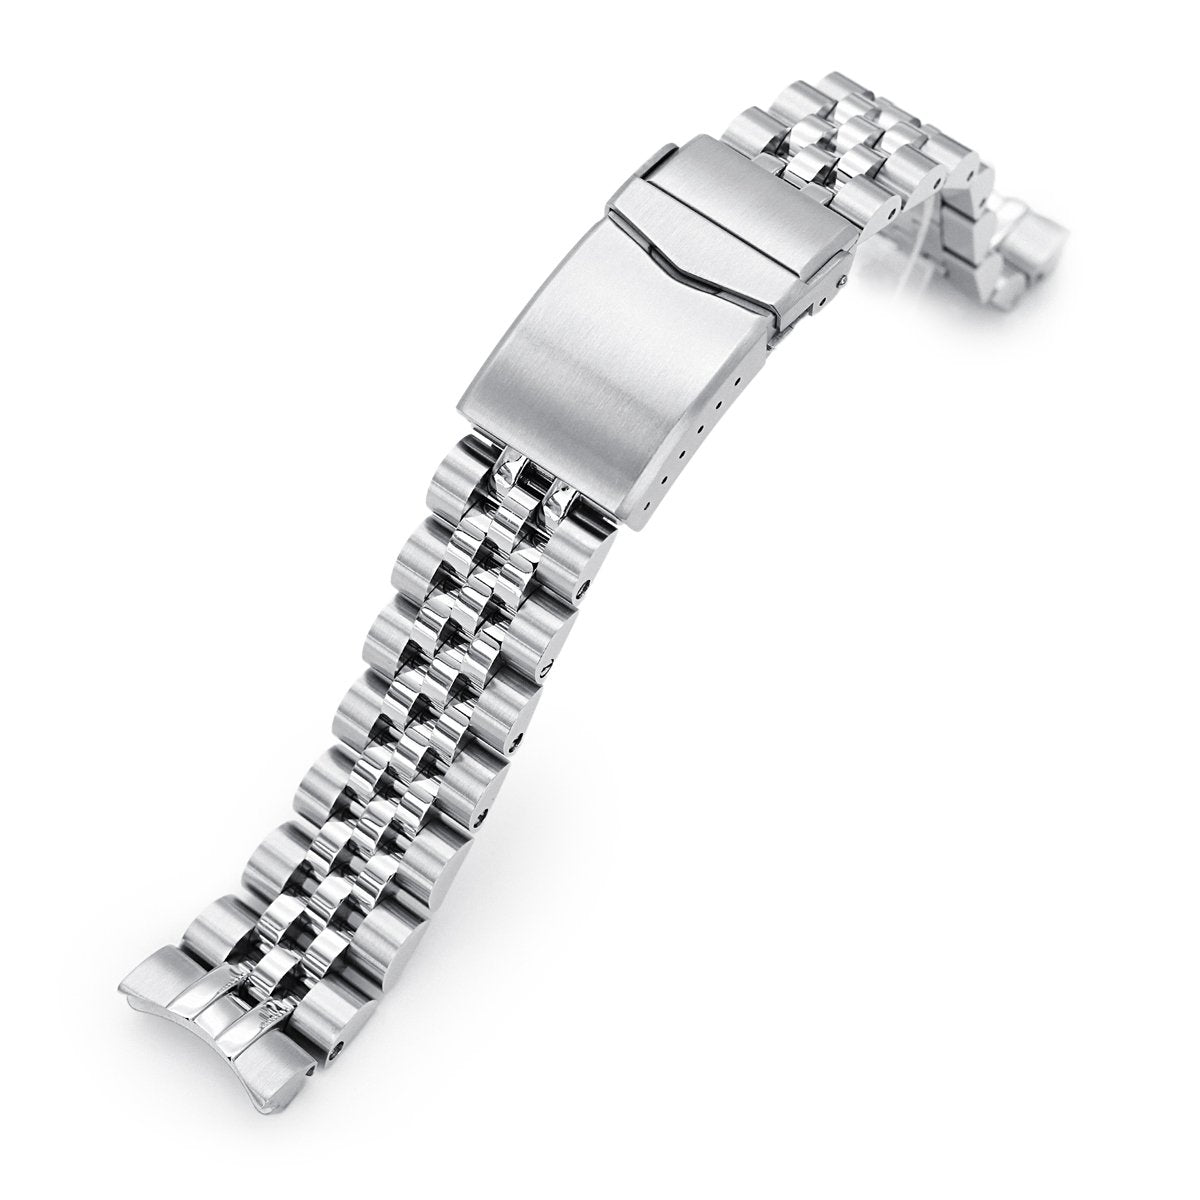 20mm Angus-J Louis 316L Stainless Steel Watch Bracelet for Seiko Mini Turtles SRPC35 Brushed V-Clasp Strapcode Watch Bands